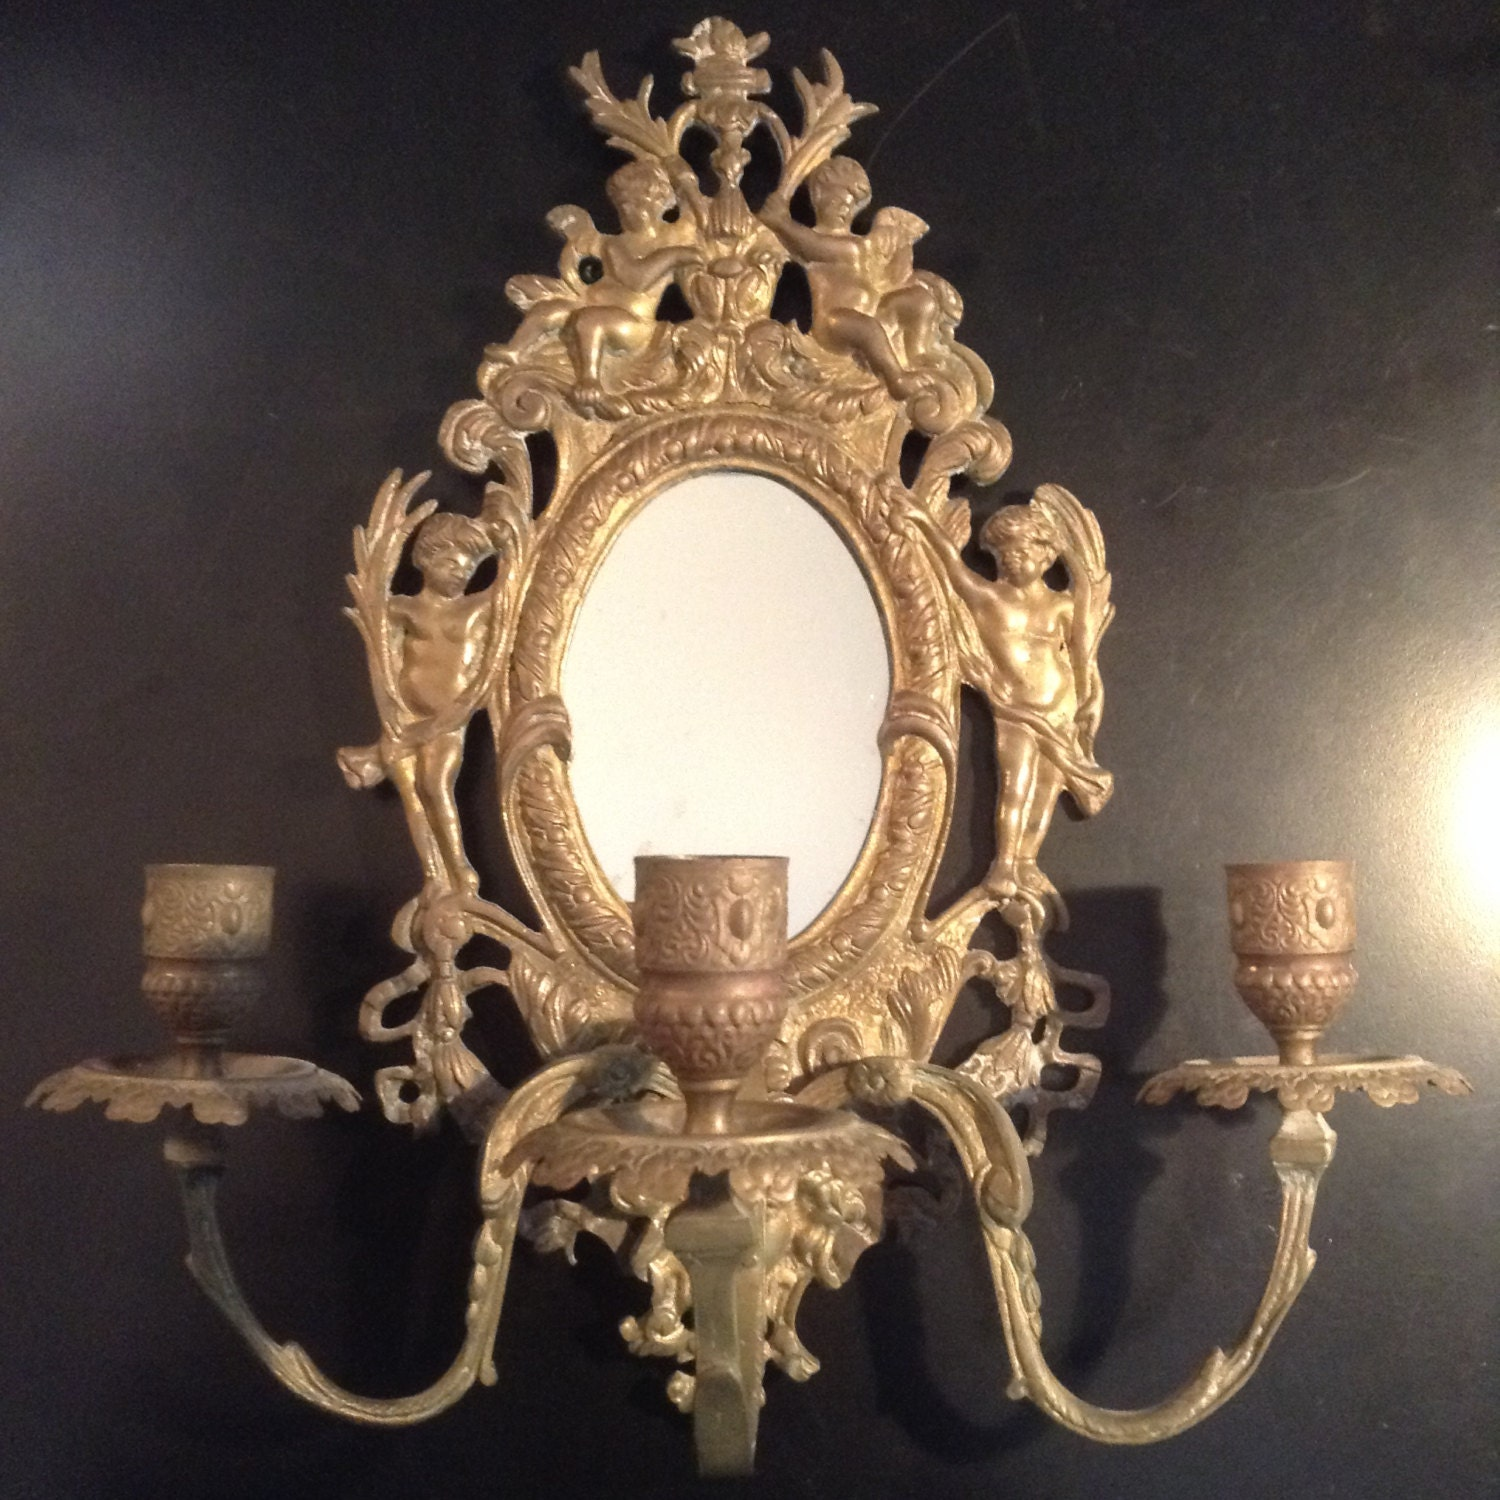 Antique mirrored brass candle sconce brass wall sconce with